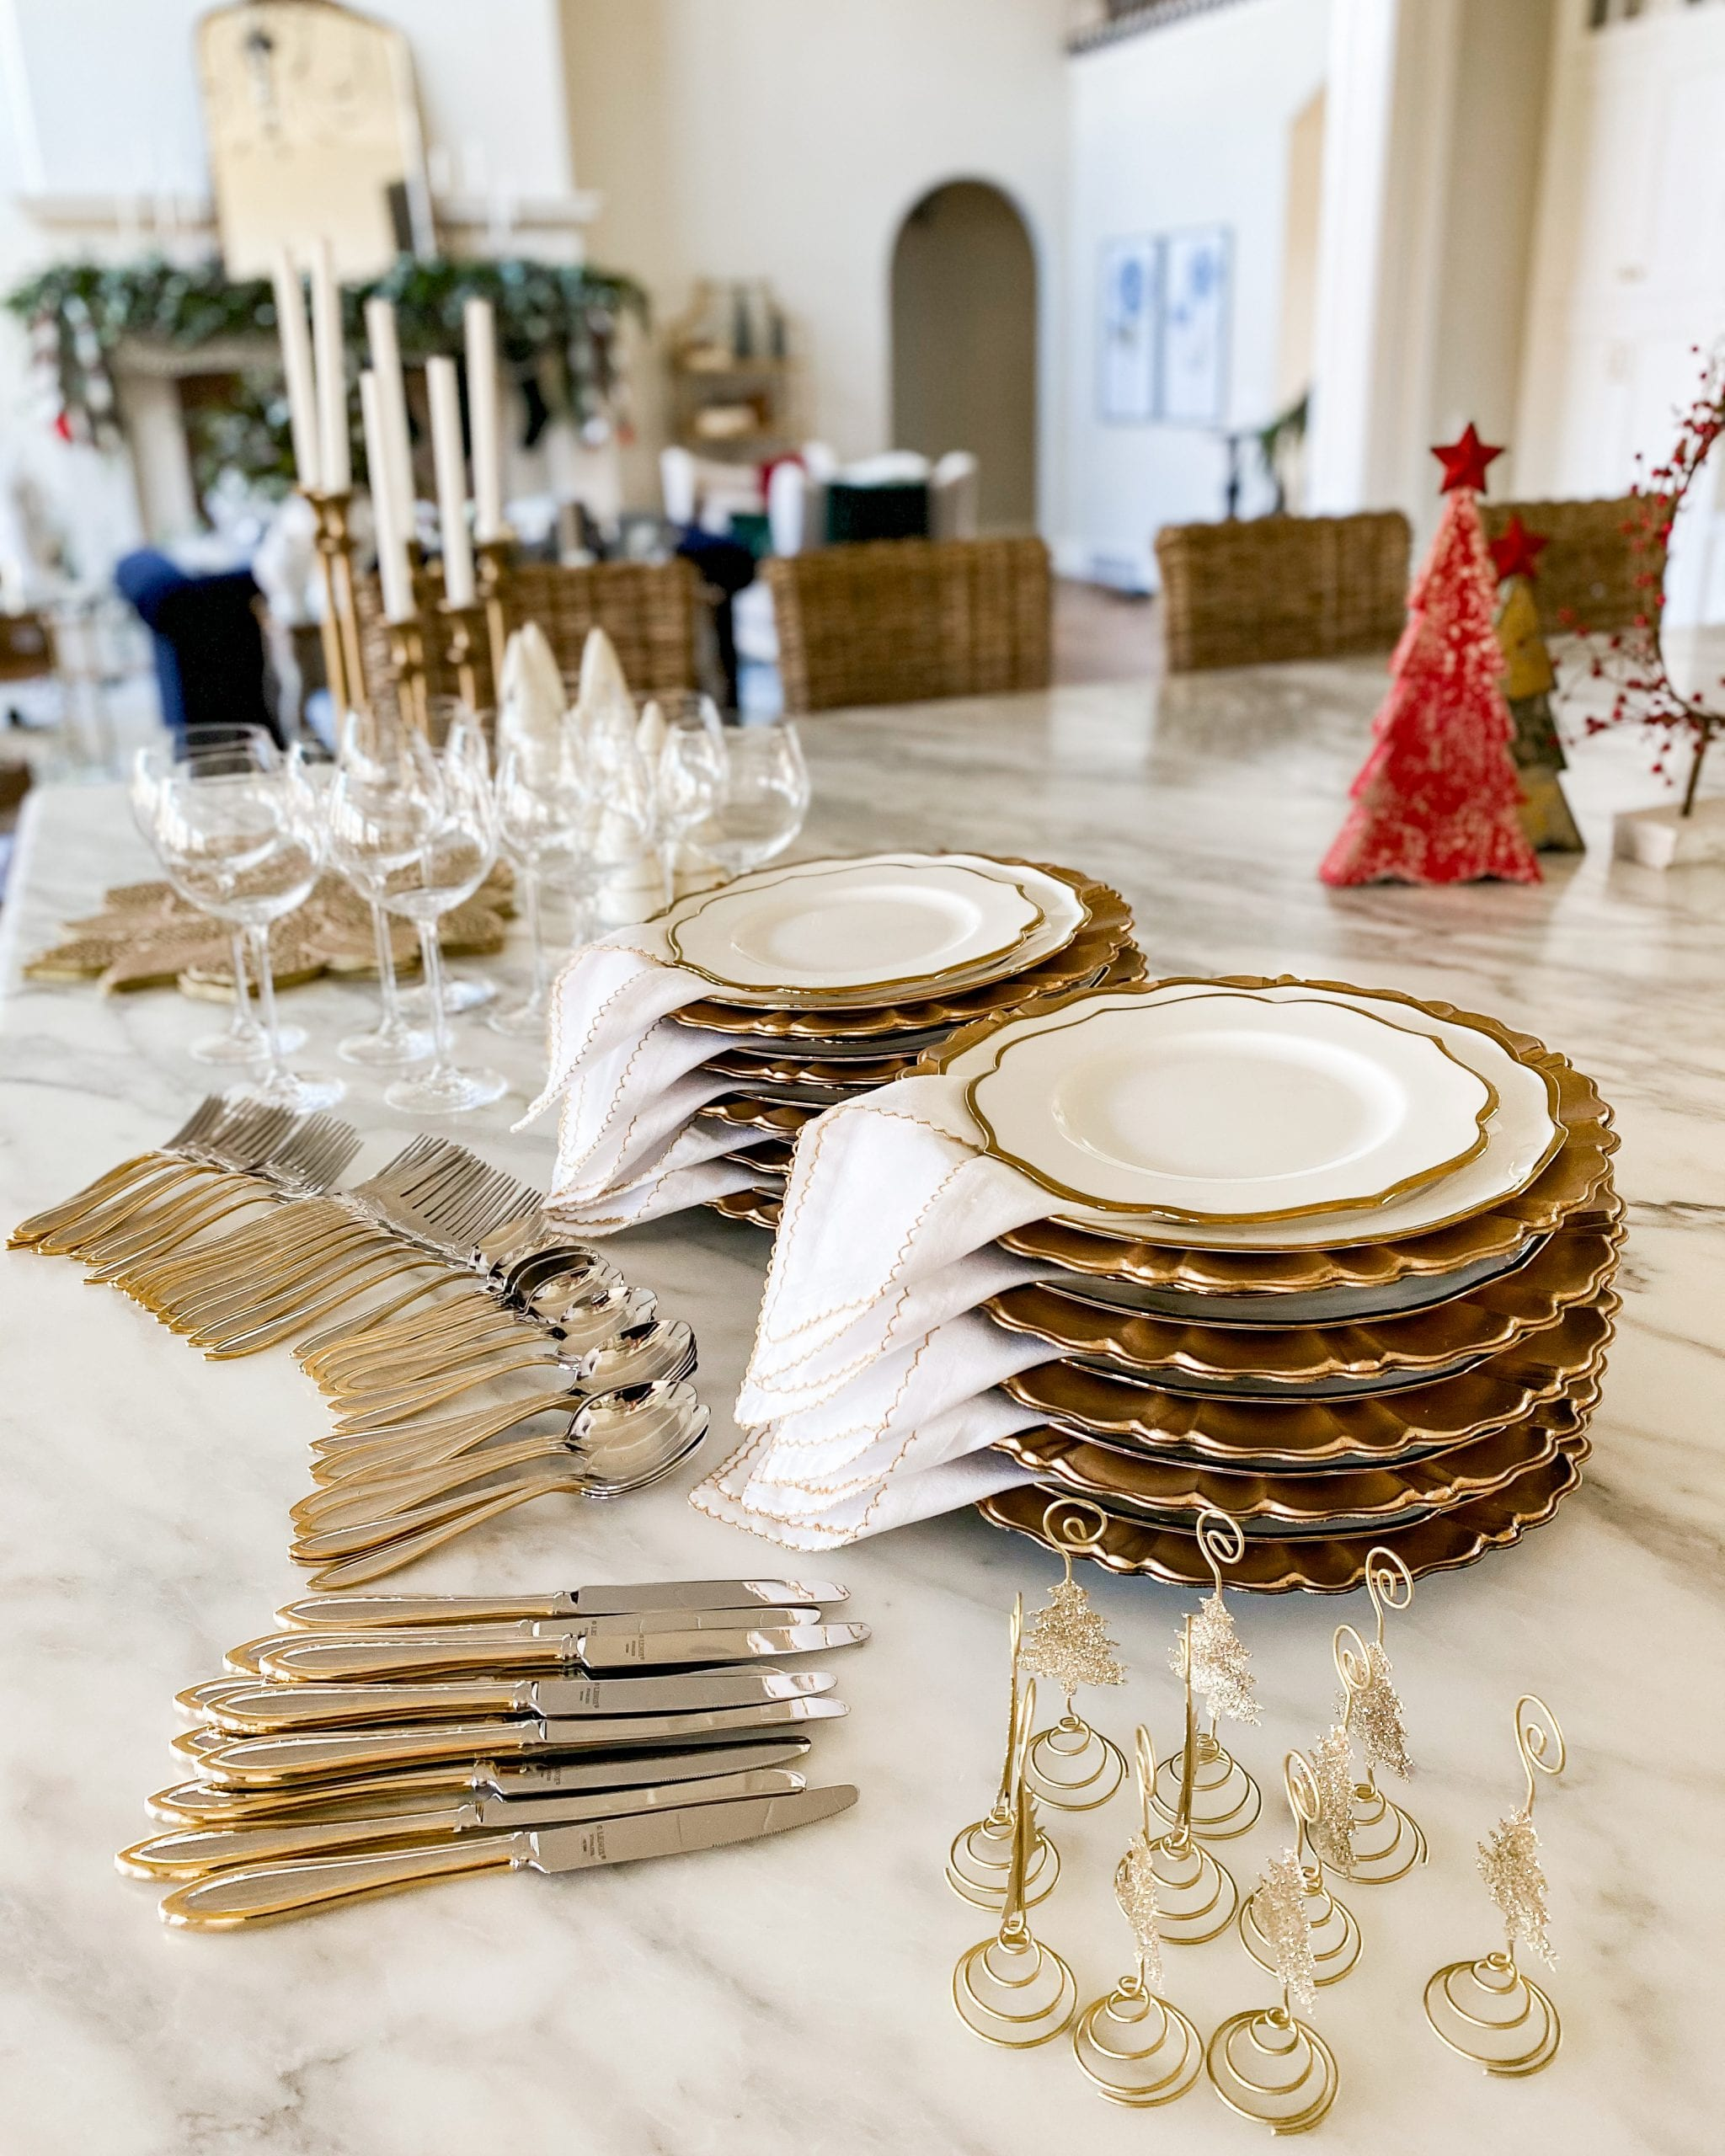 prepping for the tablescape